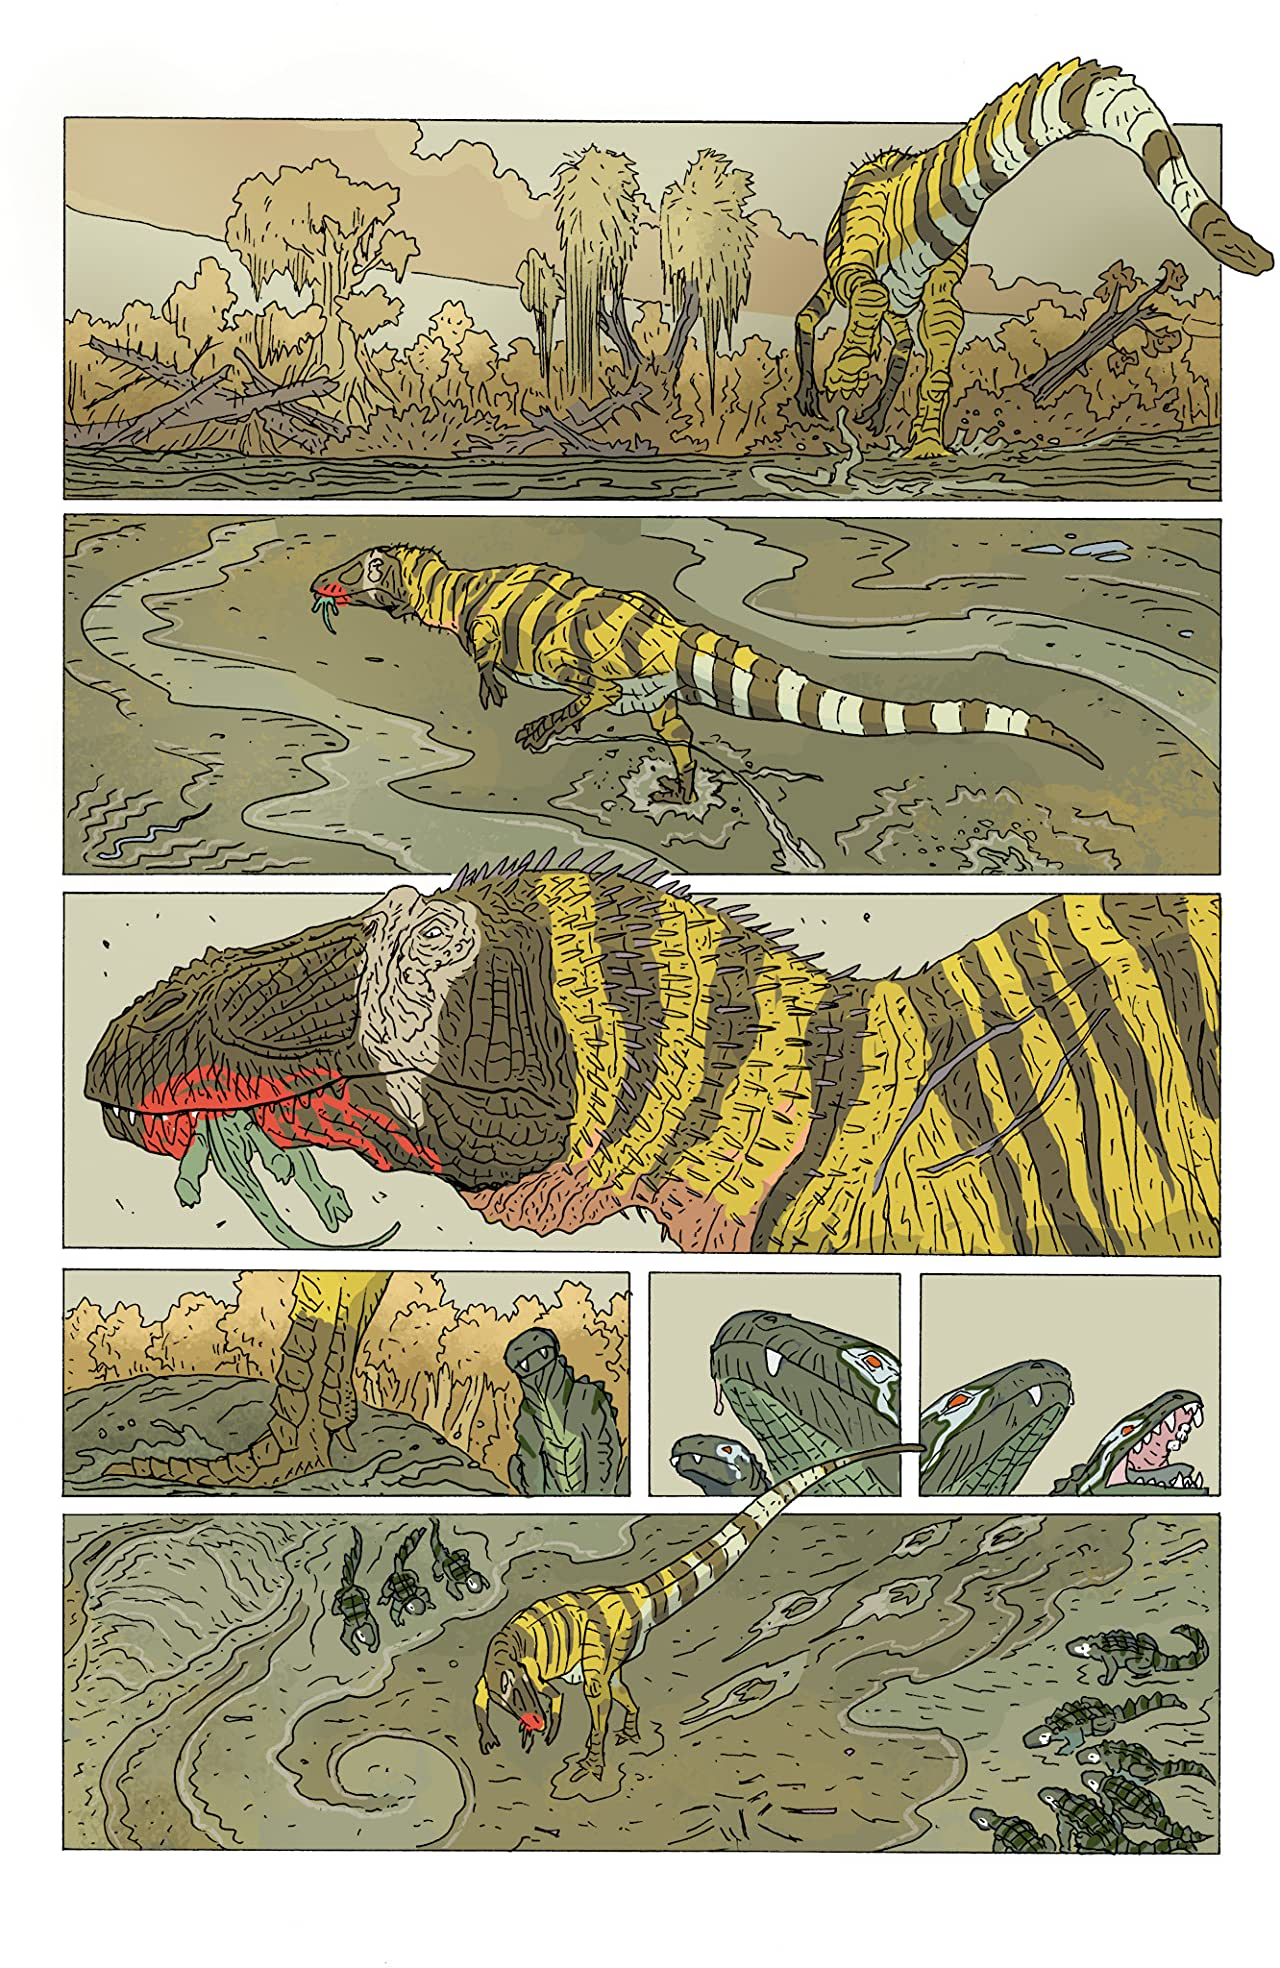 Age of Reptiles #3